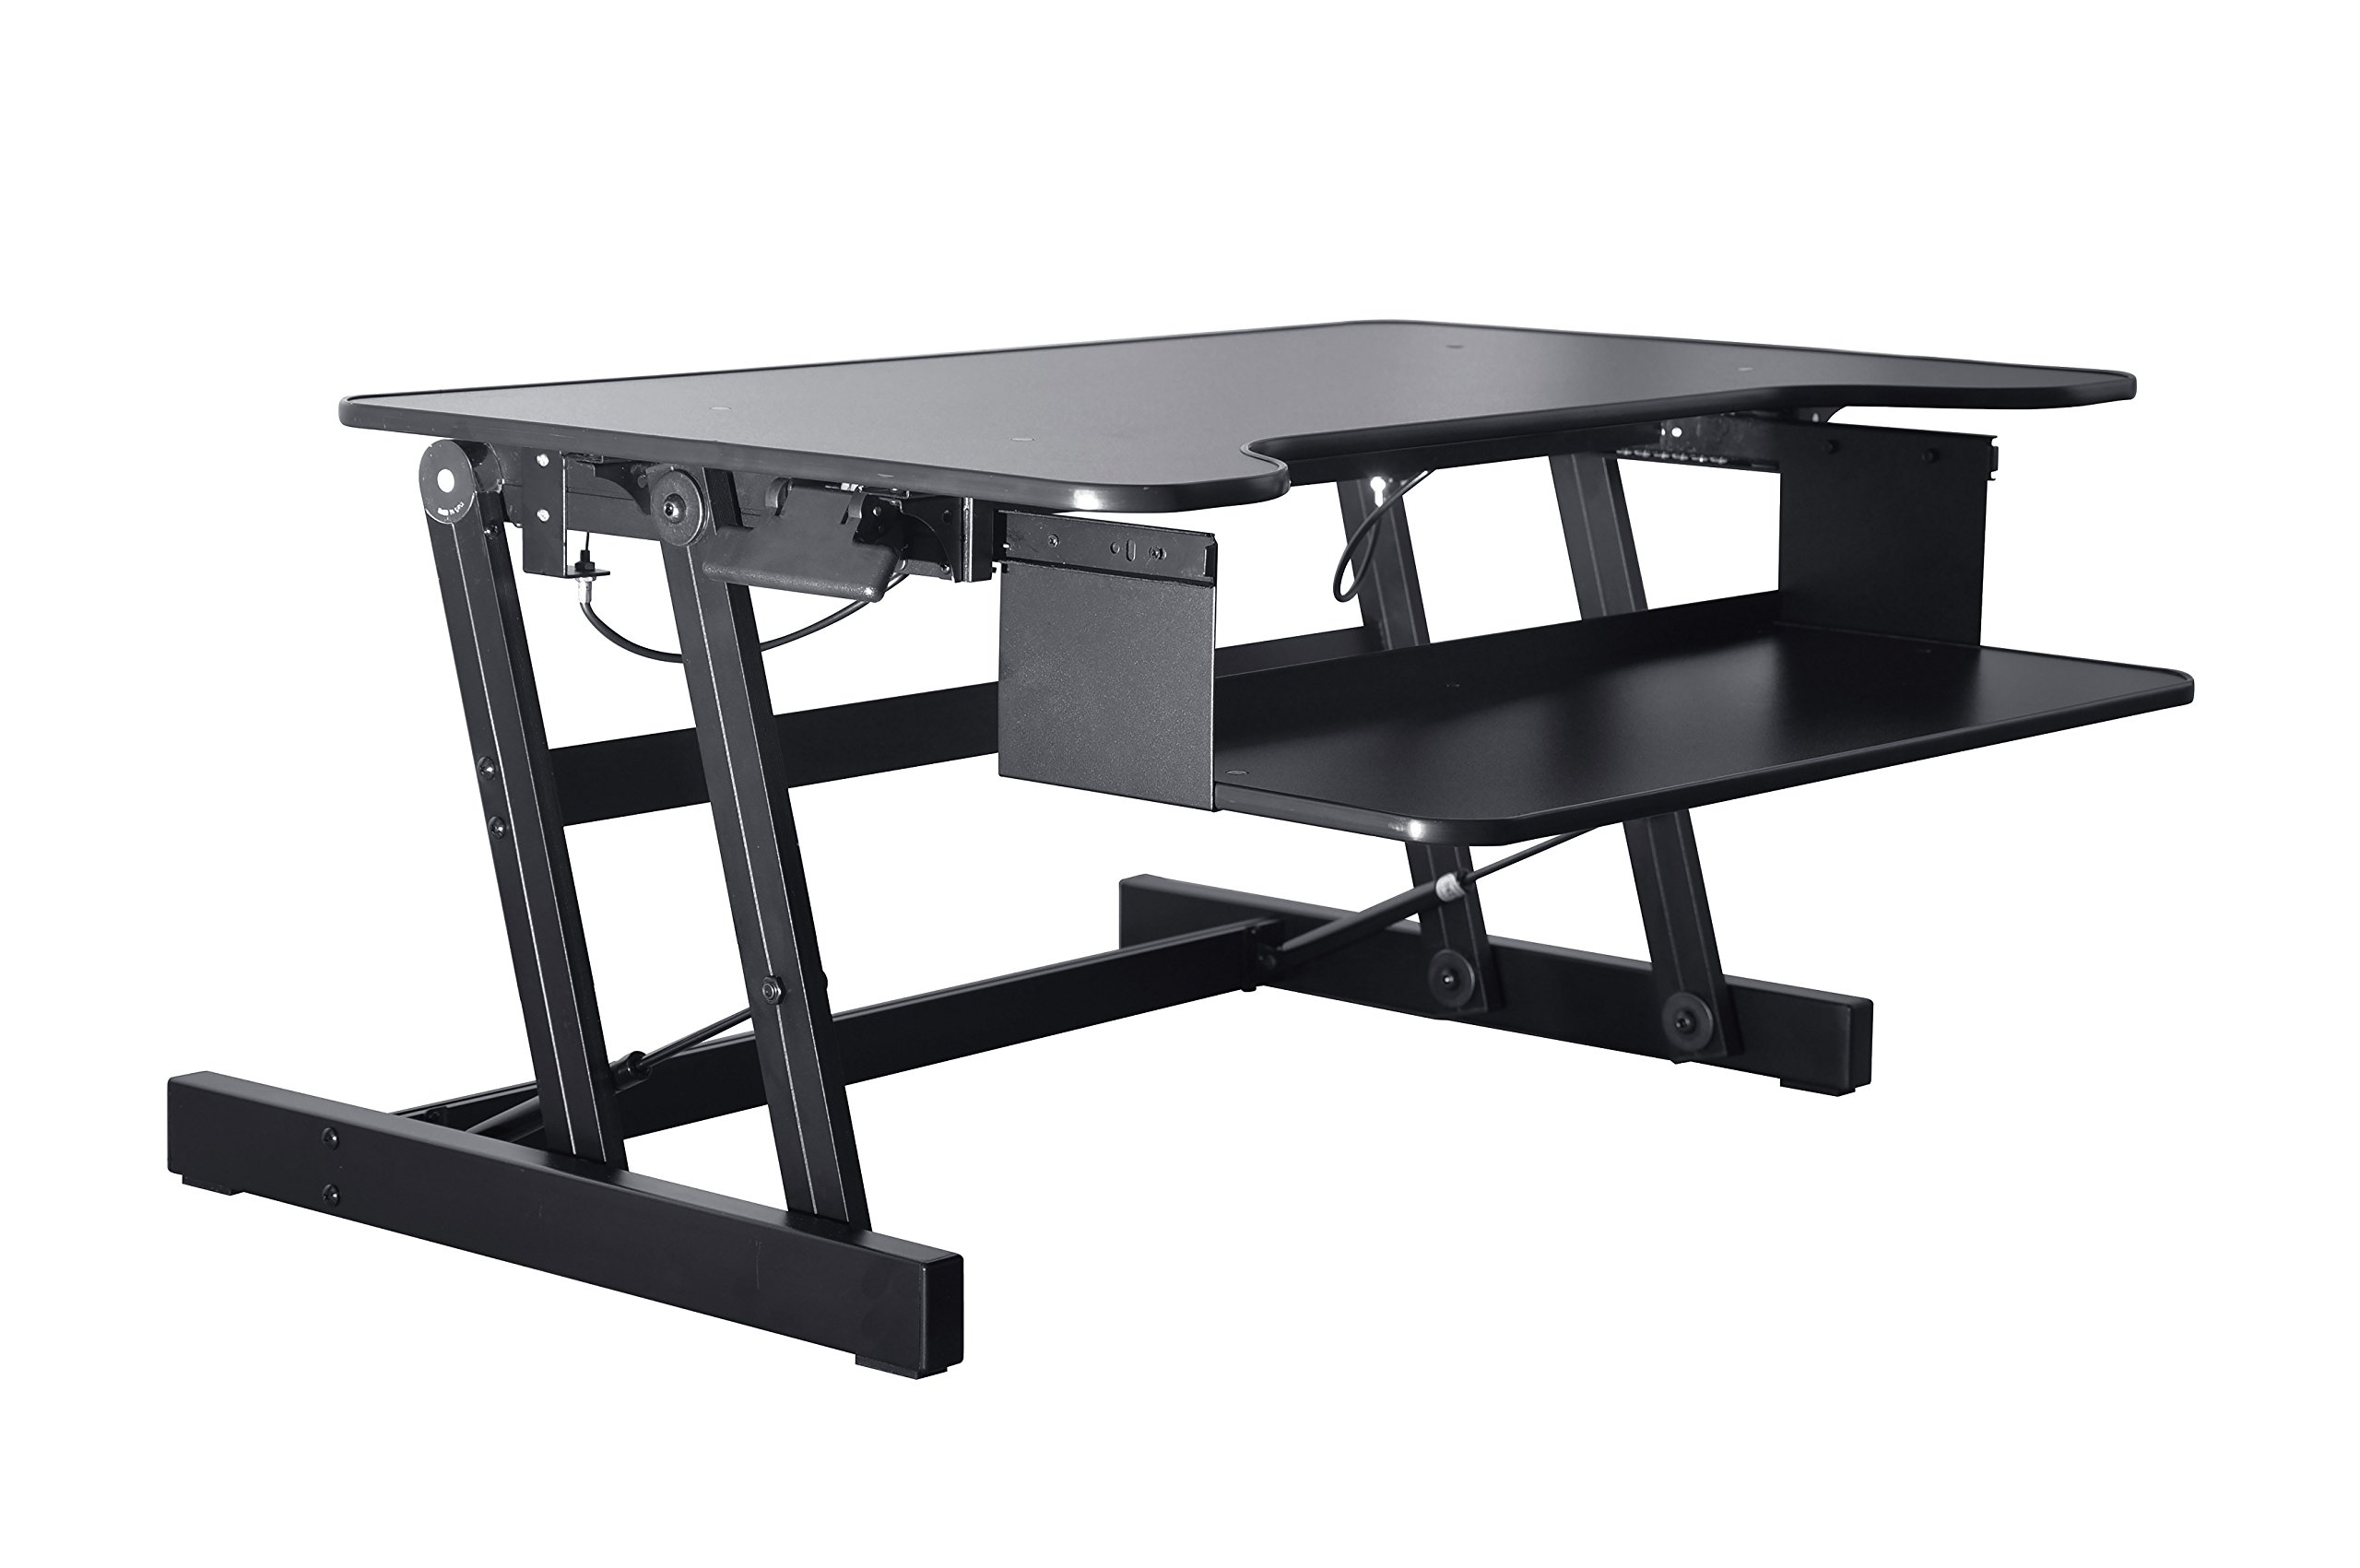 Rocelco ADR Standing Desk - Height Adjustable Sit Stand Desk Converter - Dual Monitor Capable - 32'' wide With Retractable Keyboard Tray - Black Finish